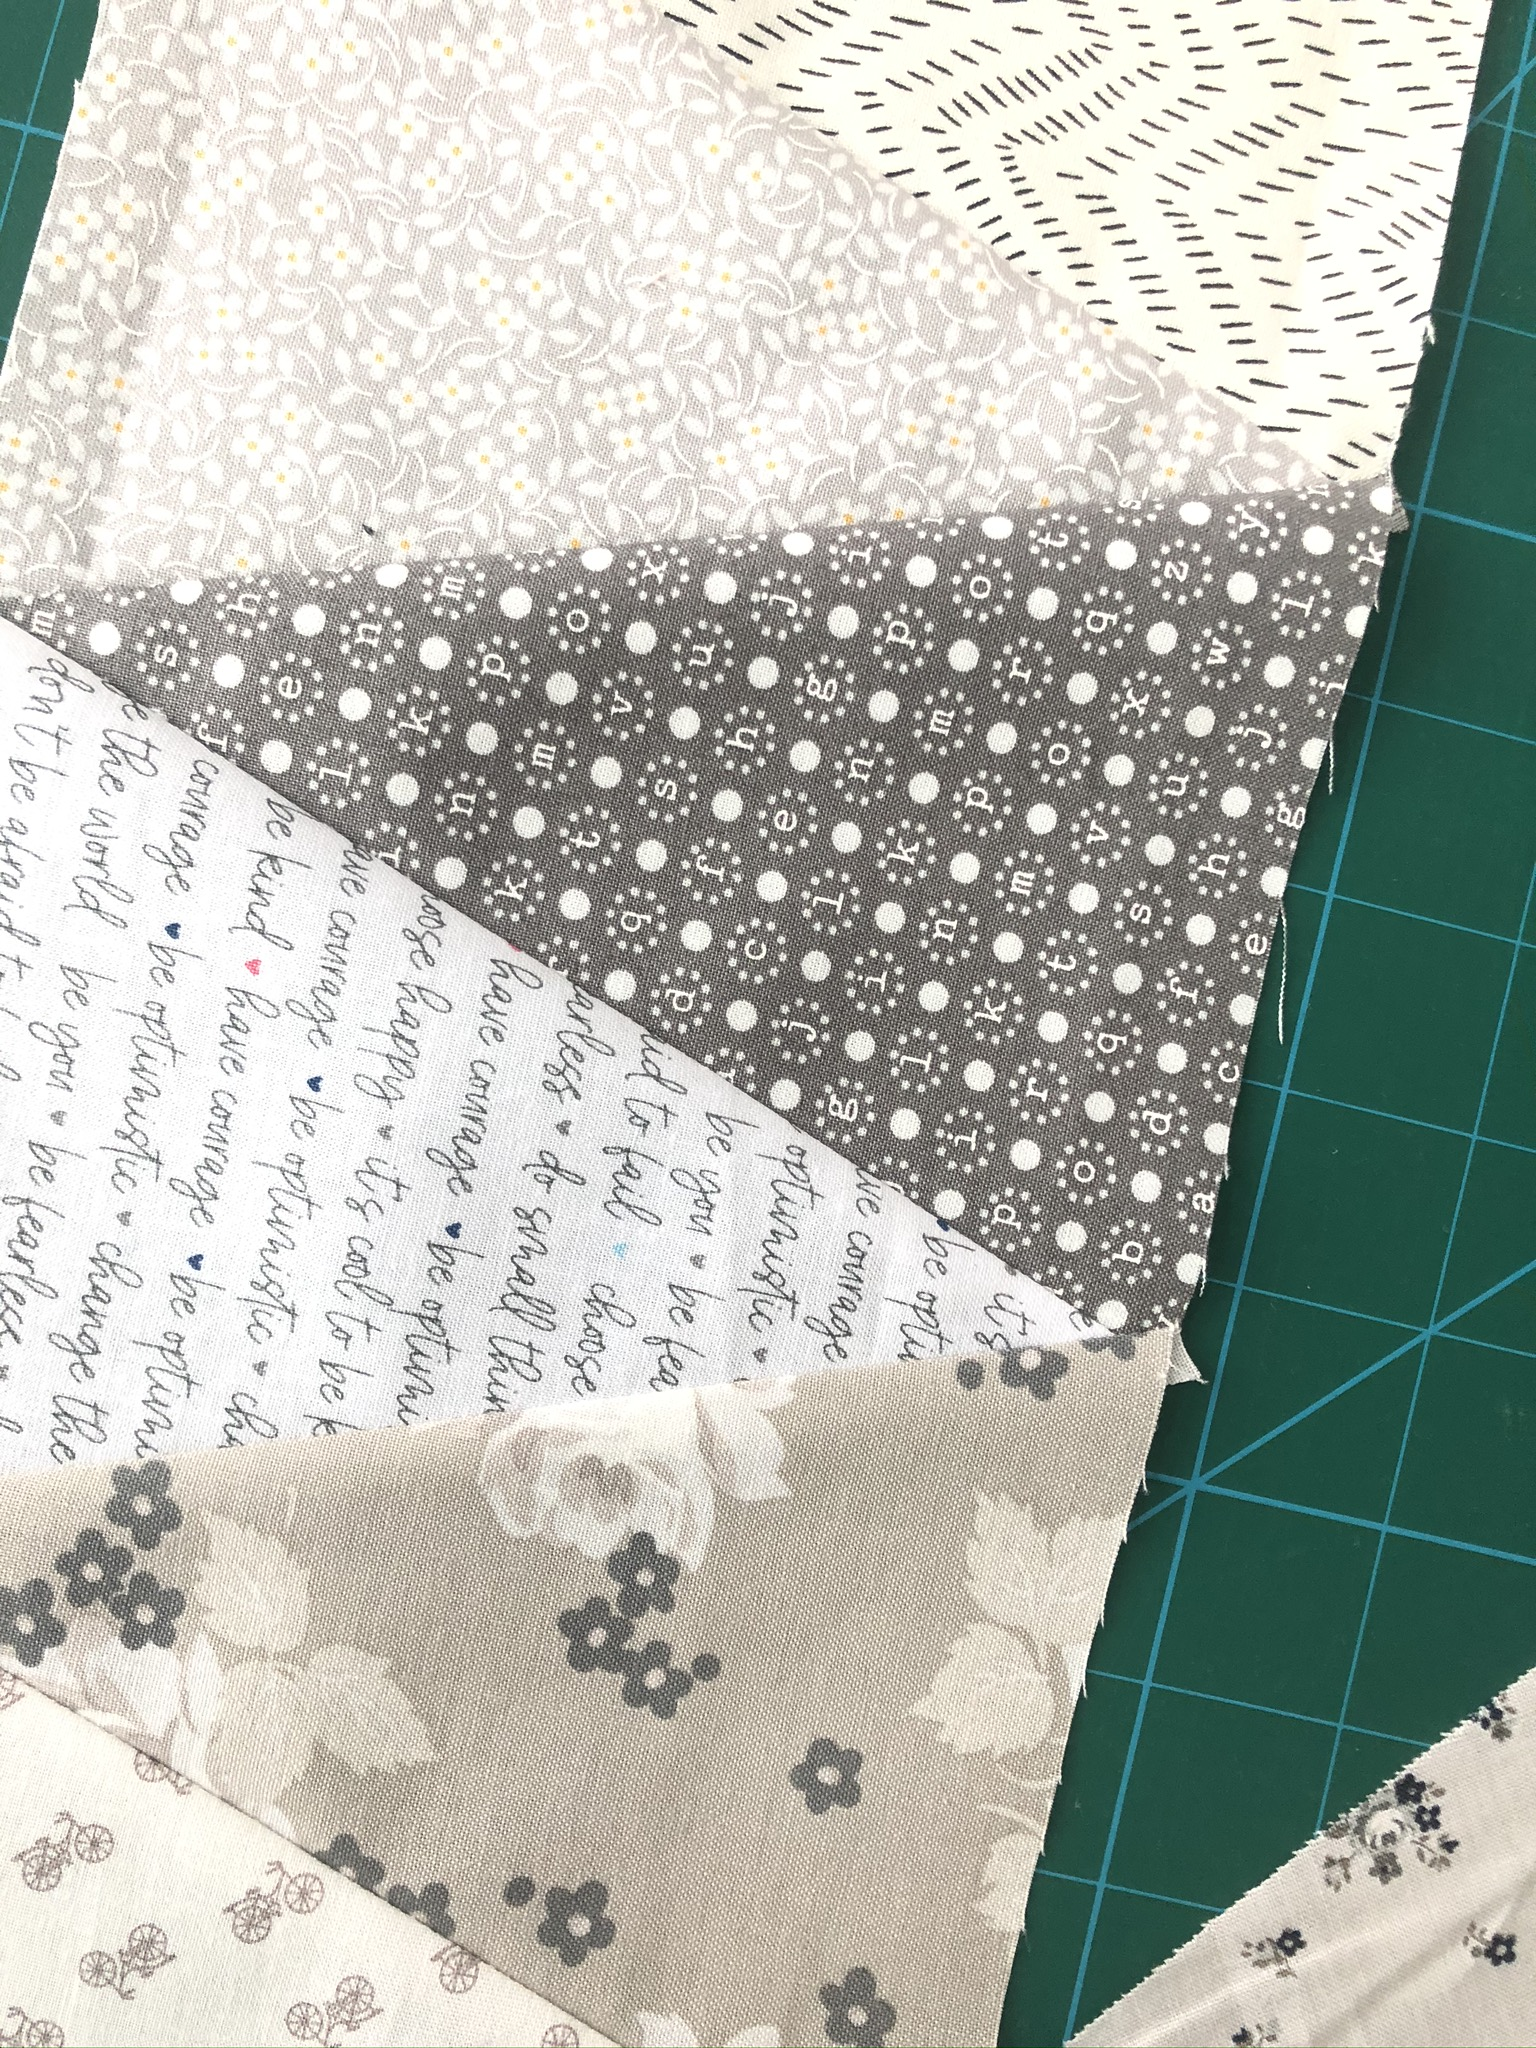 close up of low volume grey, white, cream and taupe fabric equilateral triangles